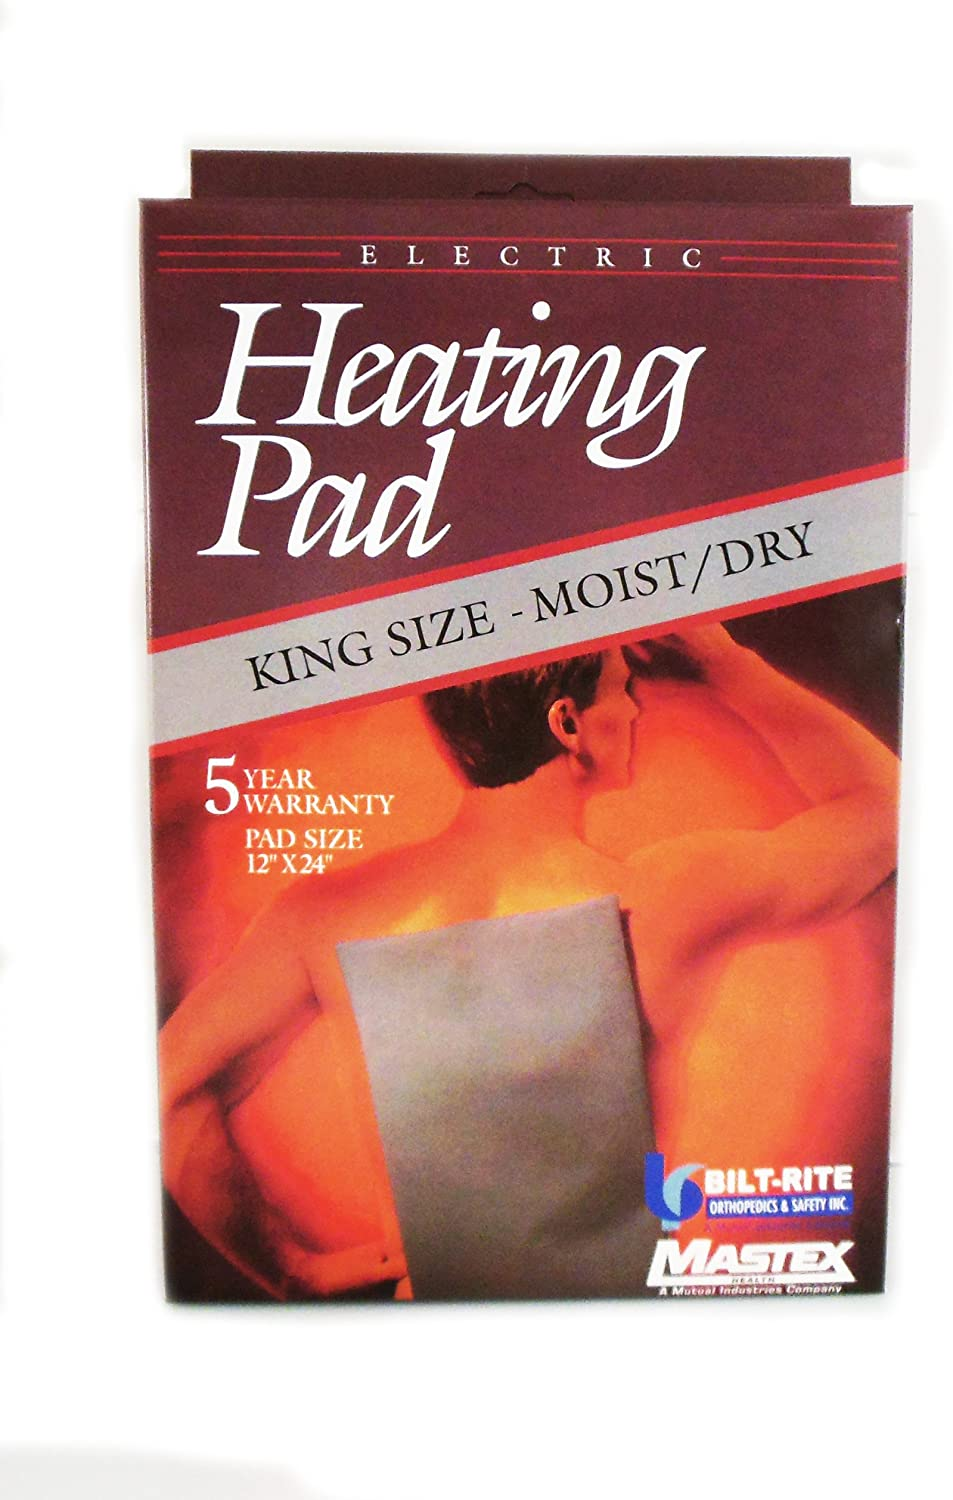 OVERSEAS USE ONLY Mastex 900 KING SIZE Moist & Dry Heating Pad